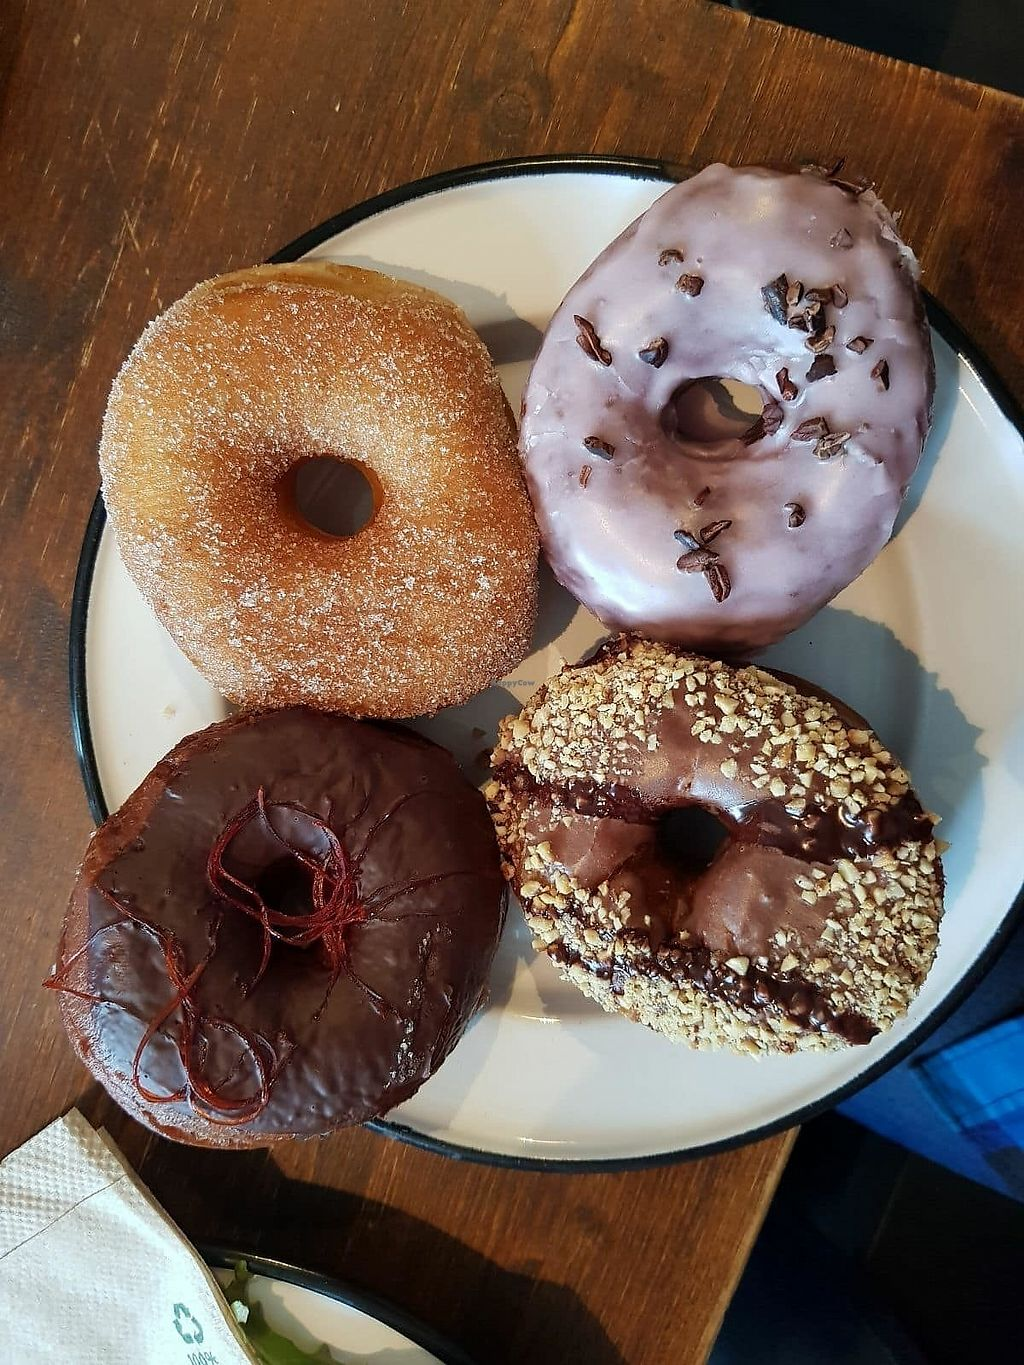 """Photo of Brammibal's Donuts - Maybachufer  by <a href=""""/members/profile/vegan.goddammit"""">vegan.goddammit</a> <br/>donuts <br/> March 12, 2018  - <a href='/contact/abuse/image/65783/369822'>Report</a>"""